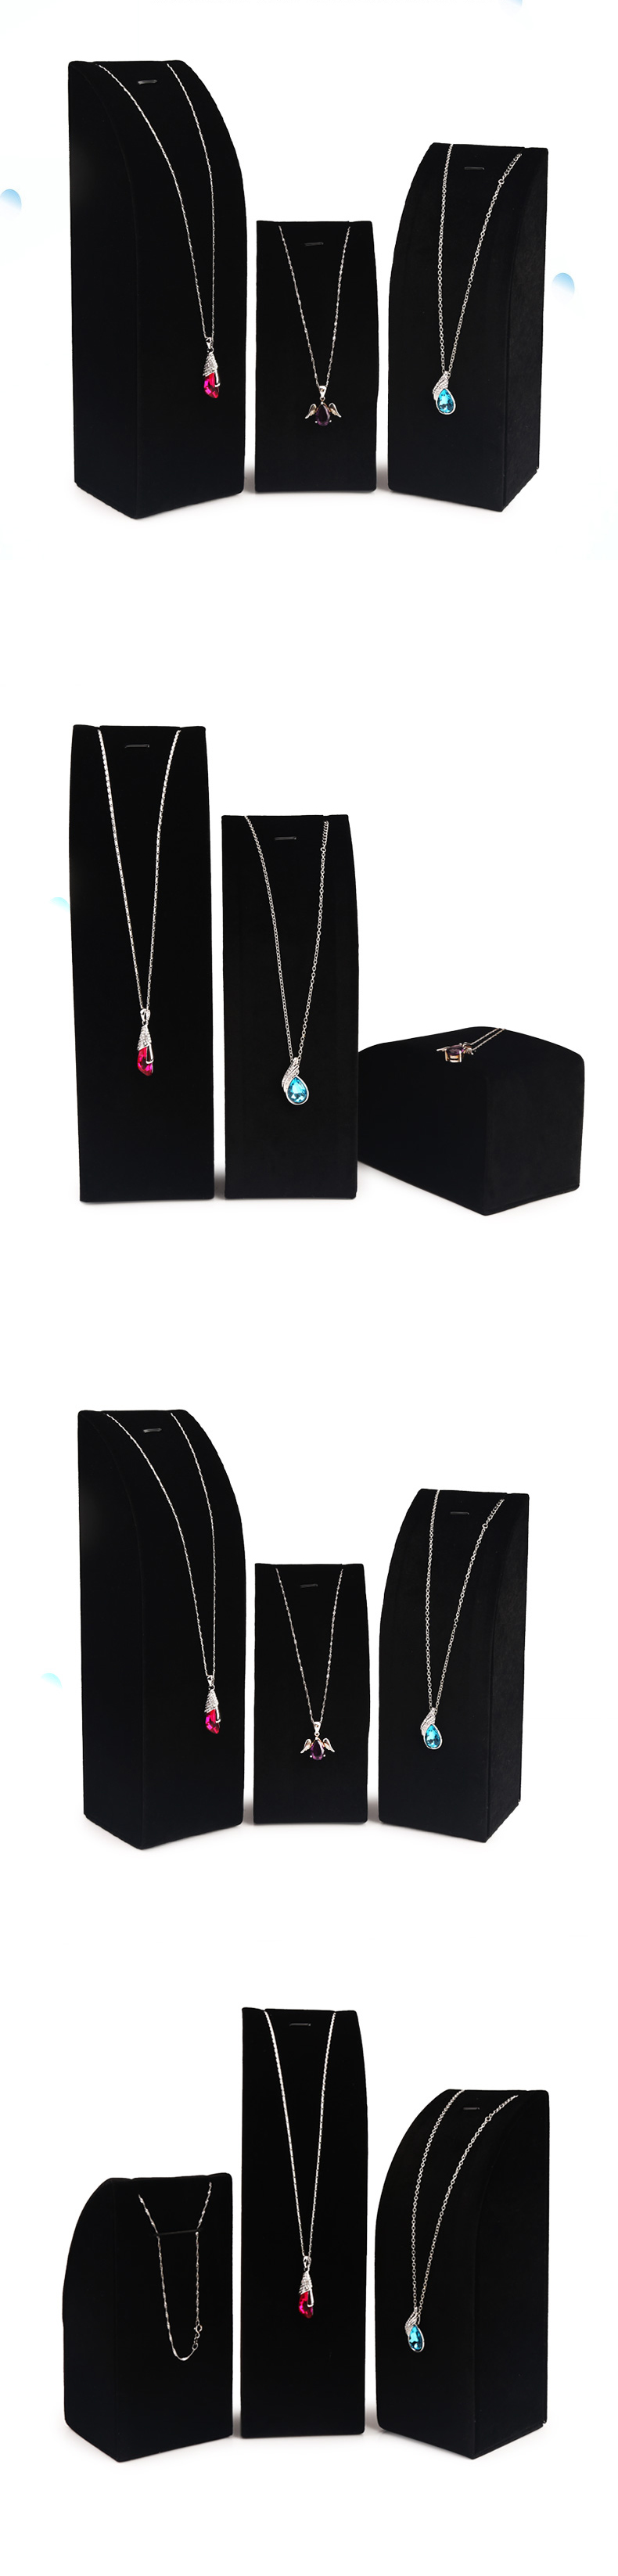 Black Velvet Necklace Counter Display Stand